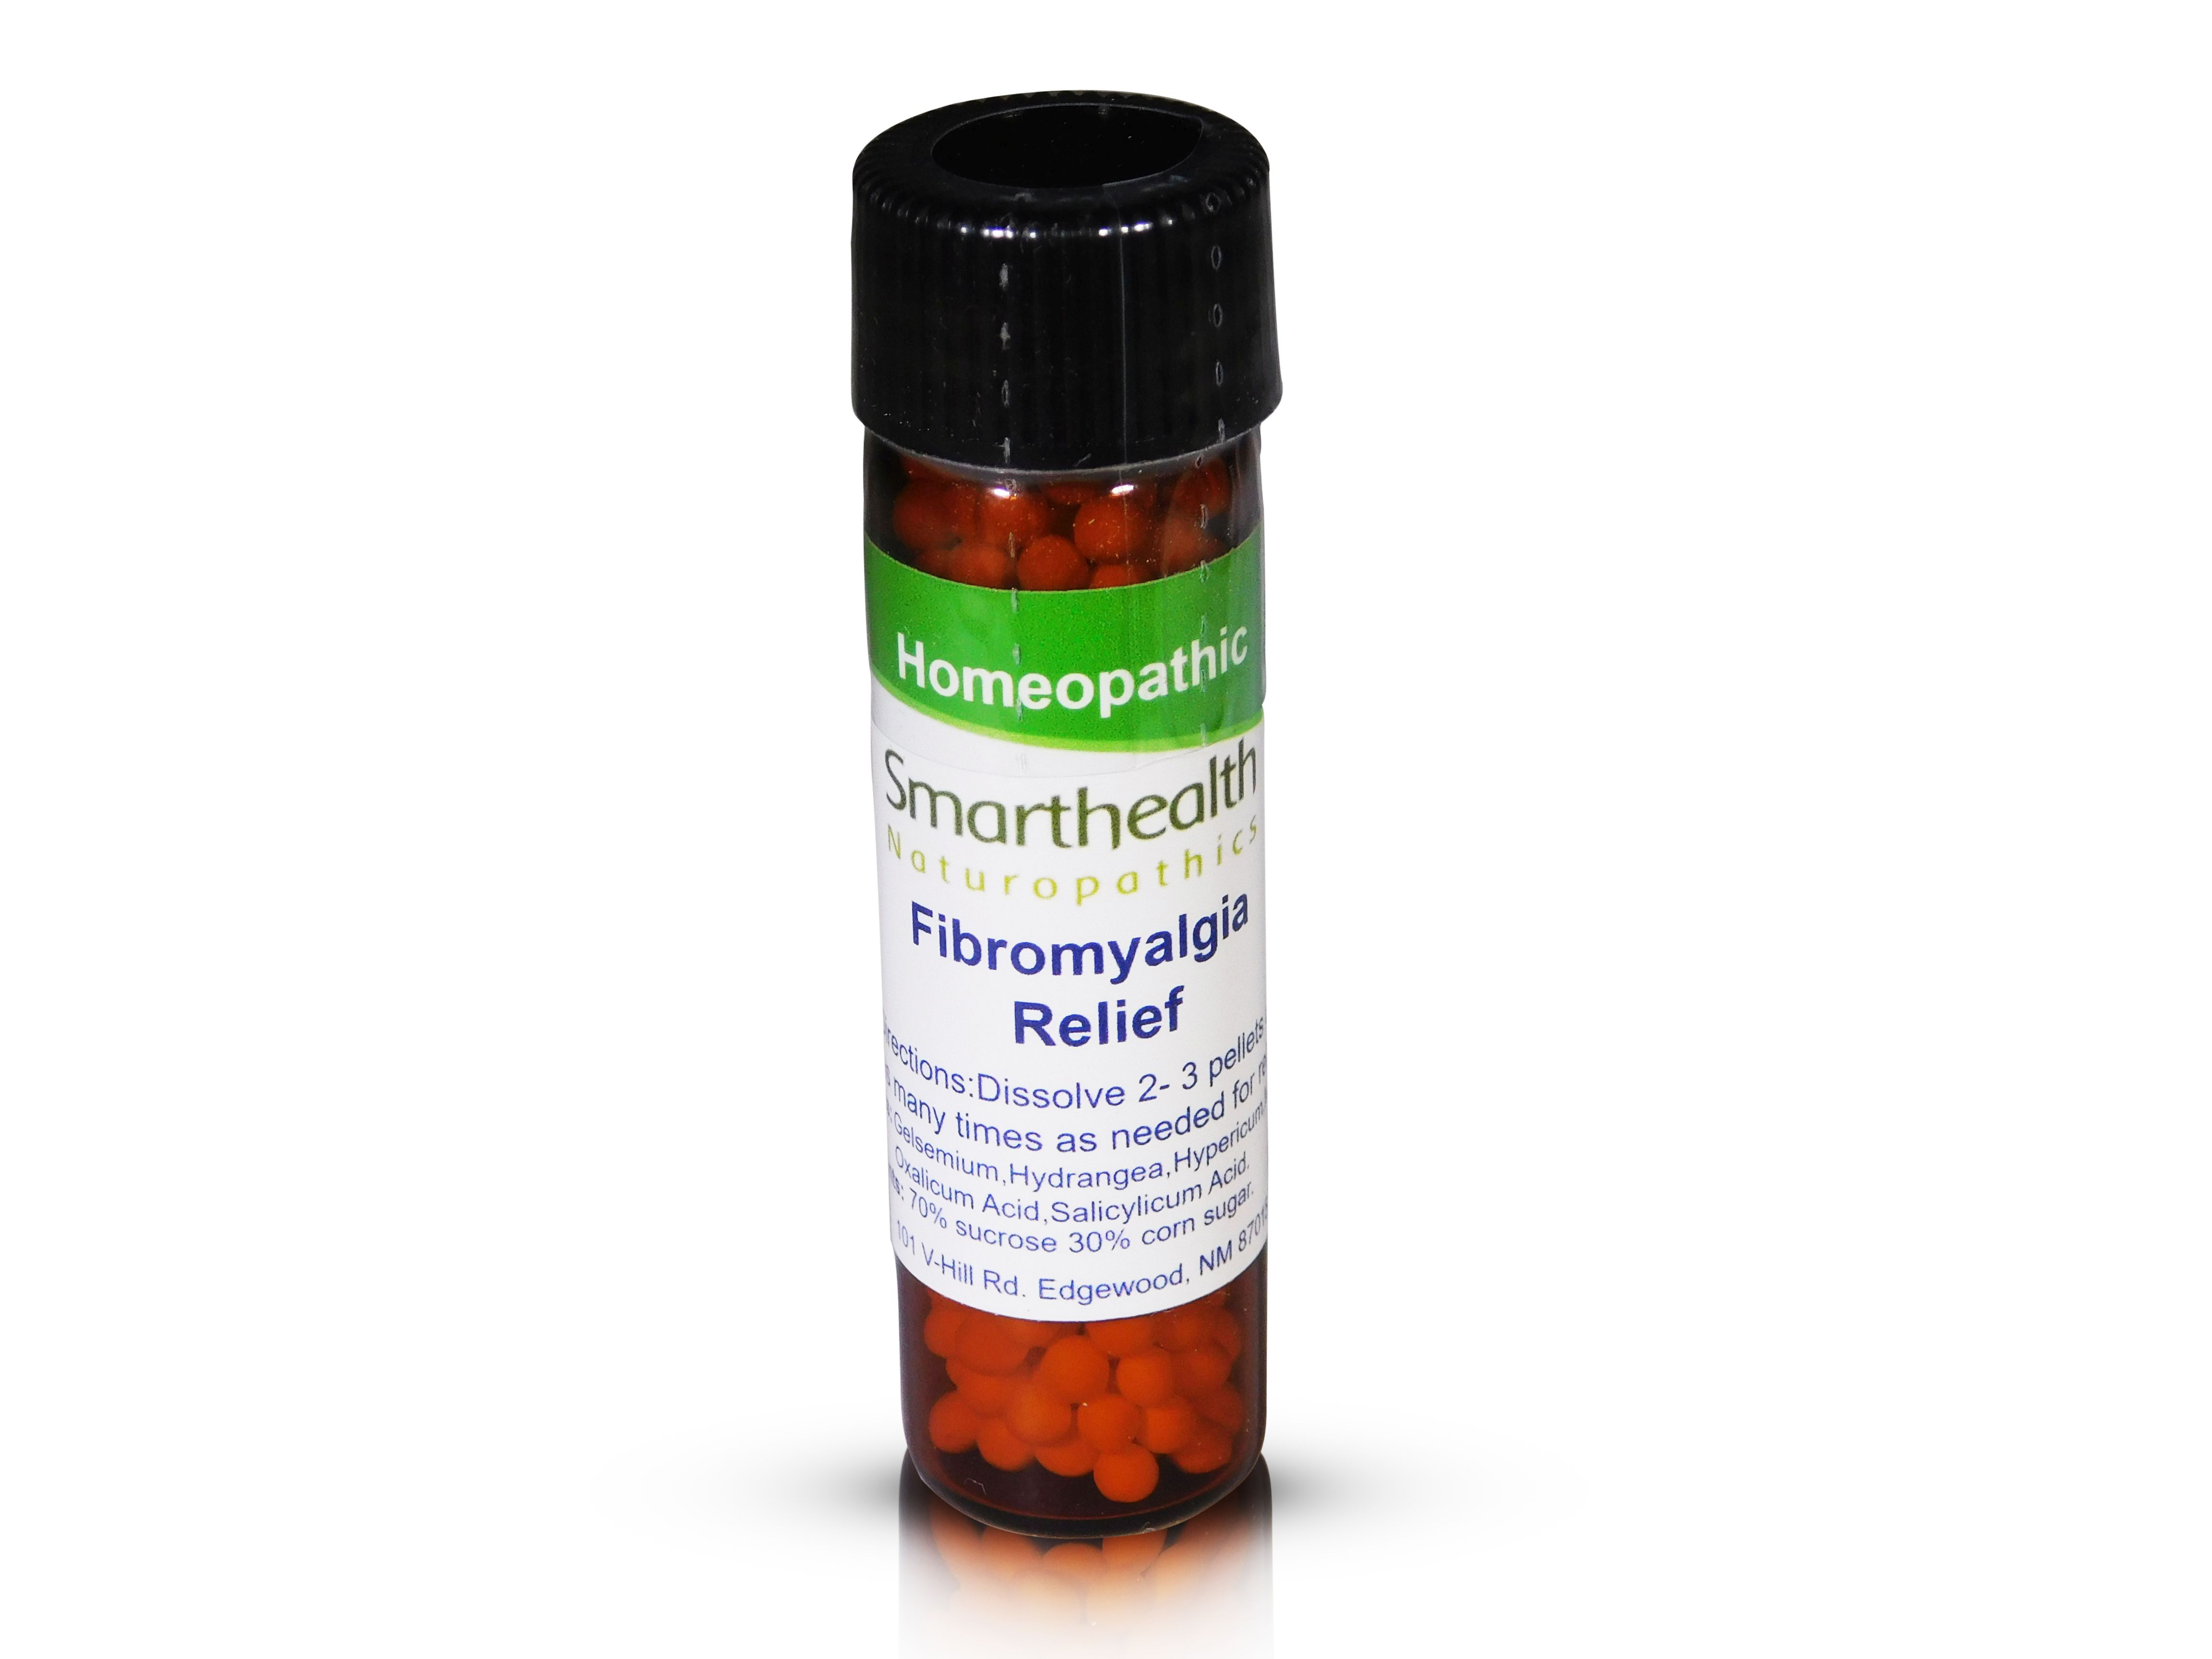 Fibromyalgia Pain Relief Medicine.Oral Homeopathic Pills.